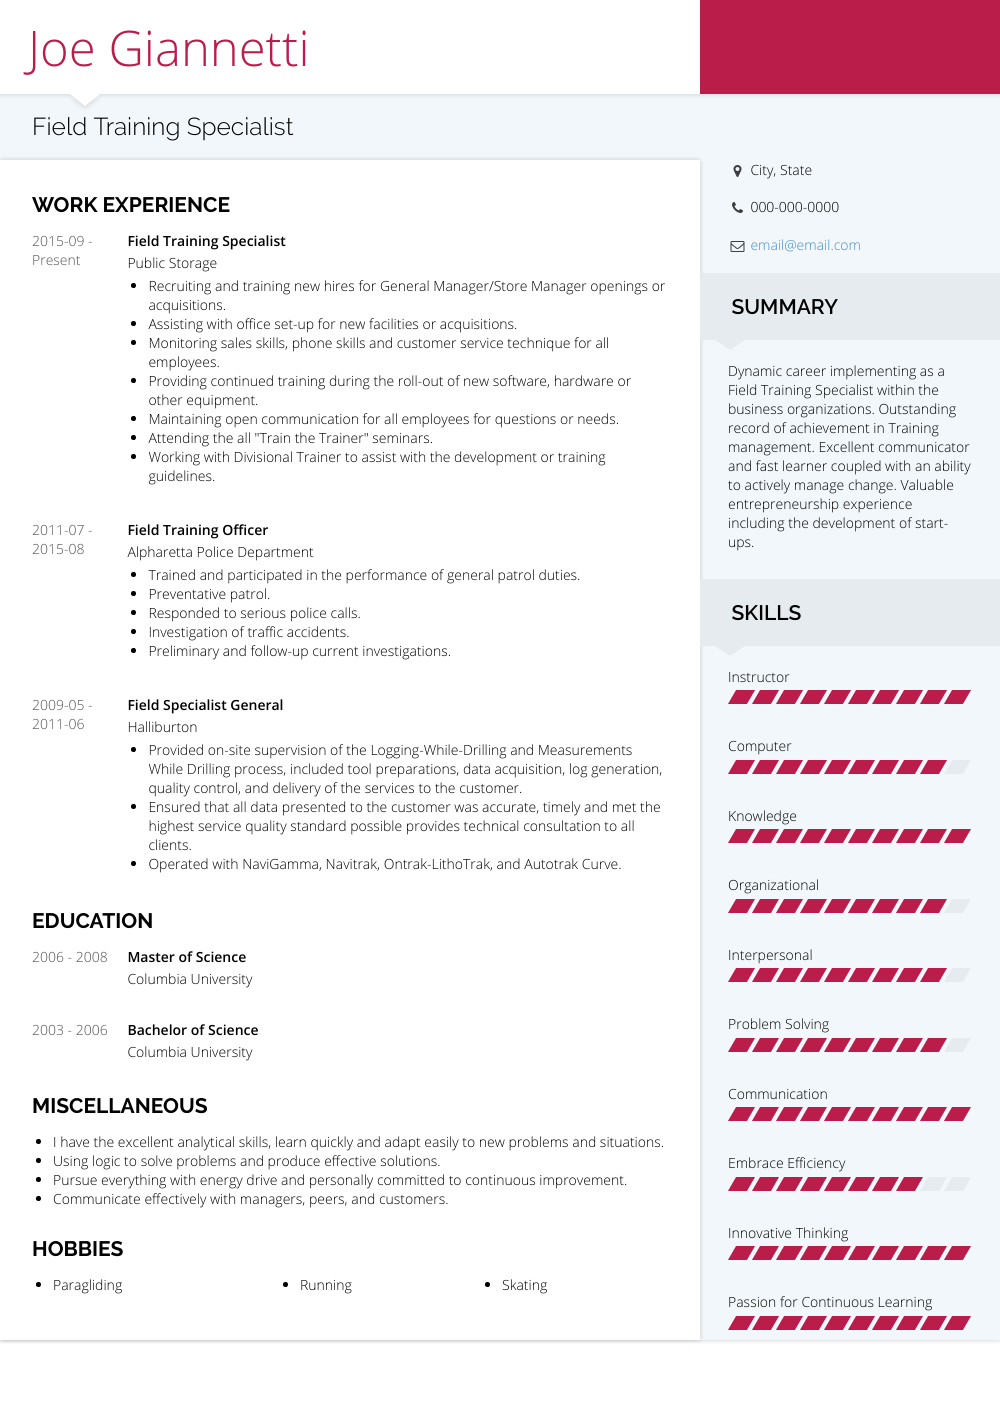 Field Training Specialist Resume Sample